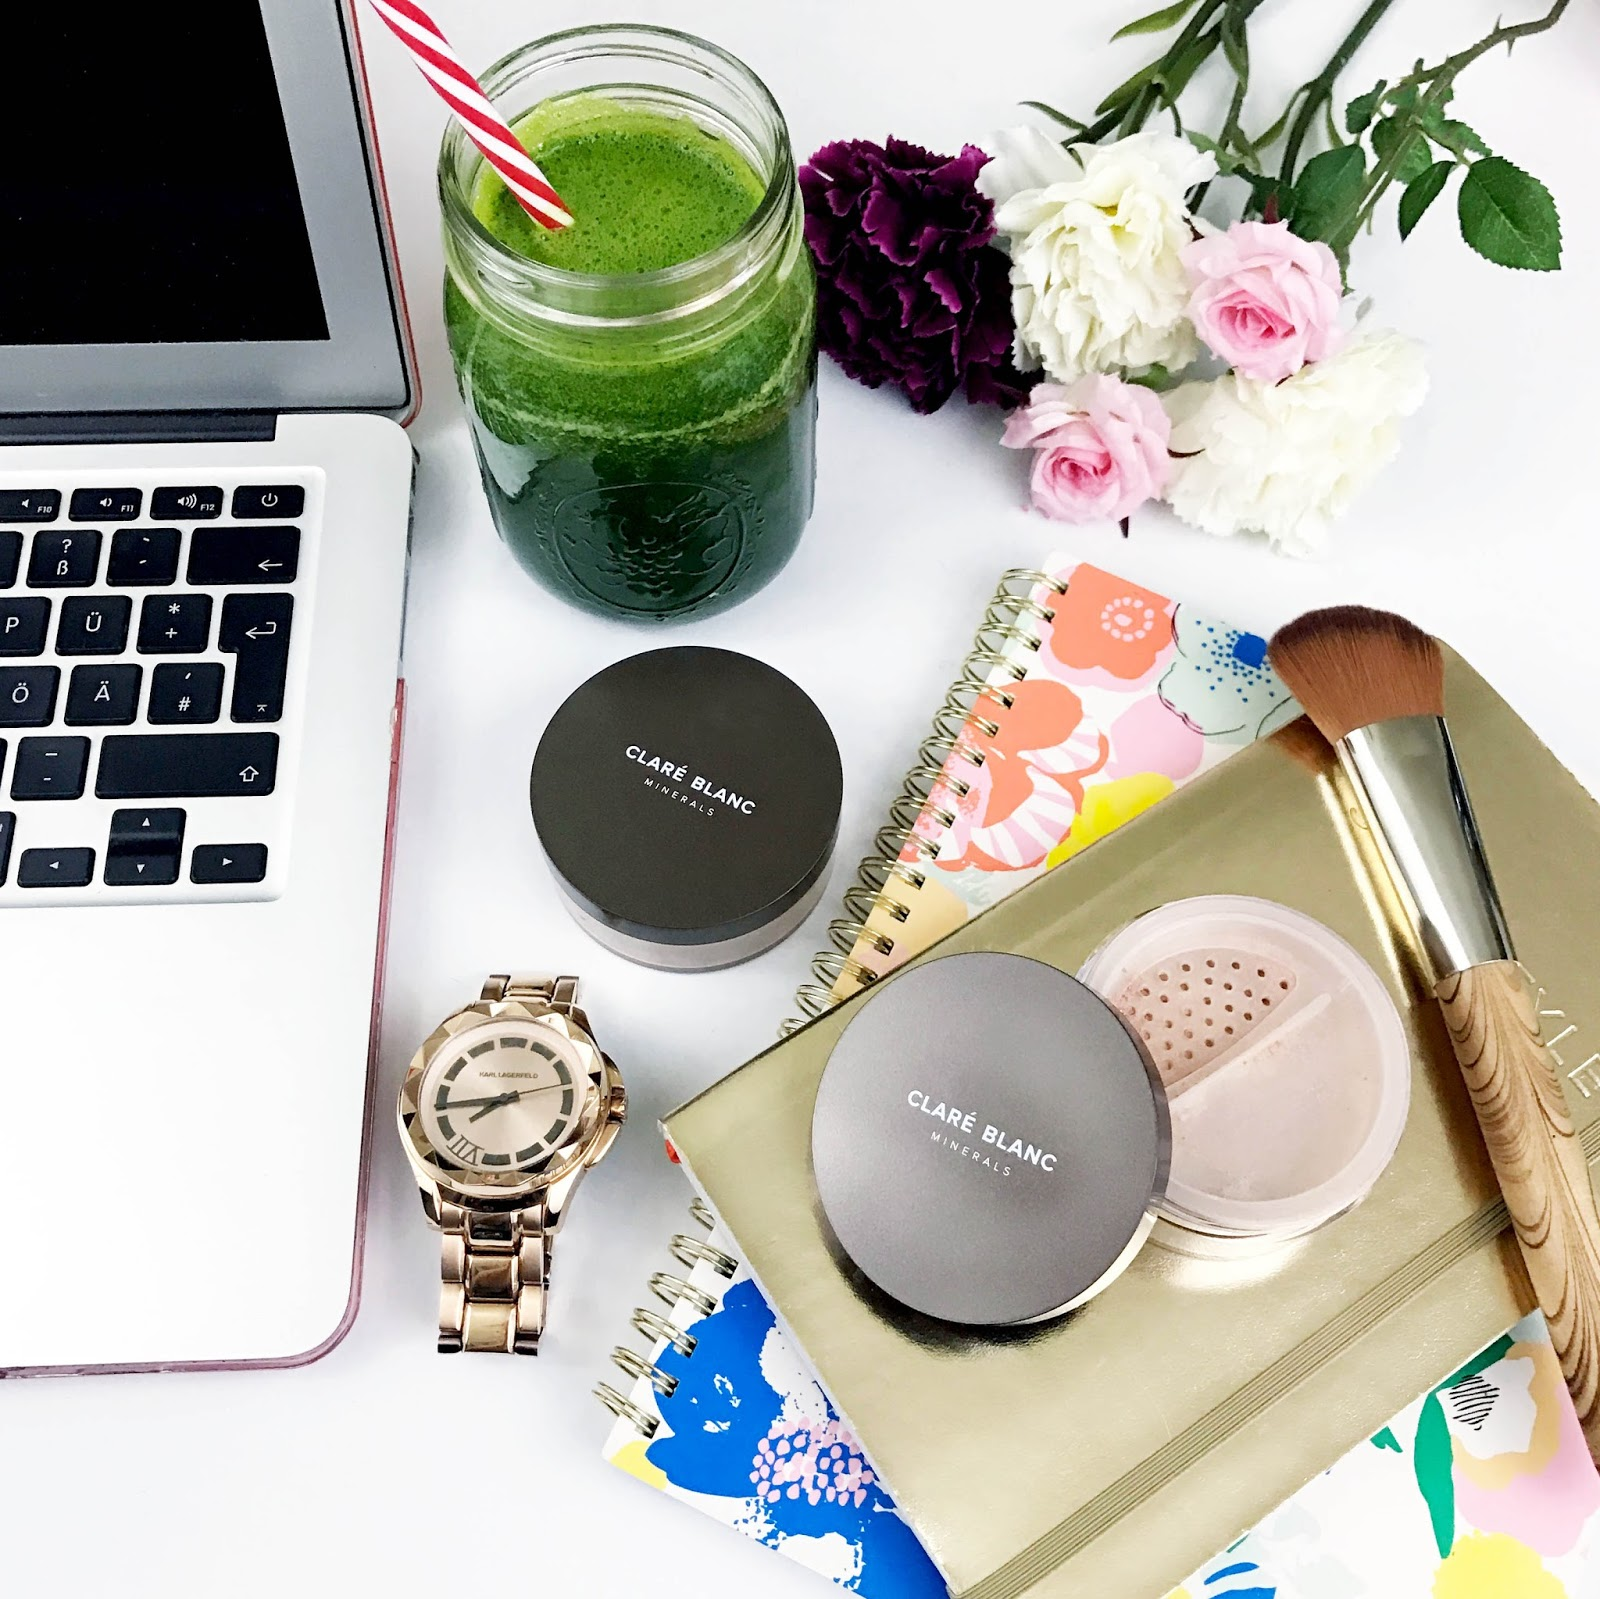 clare blanc makeup review